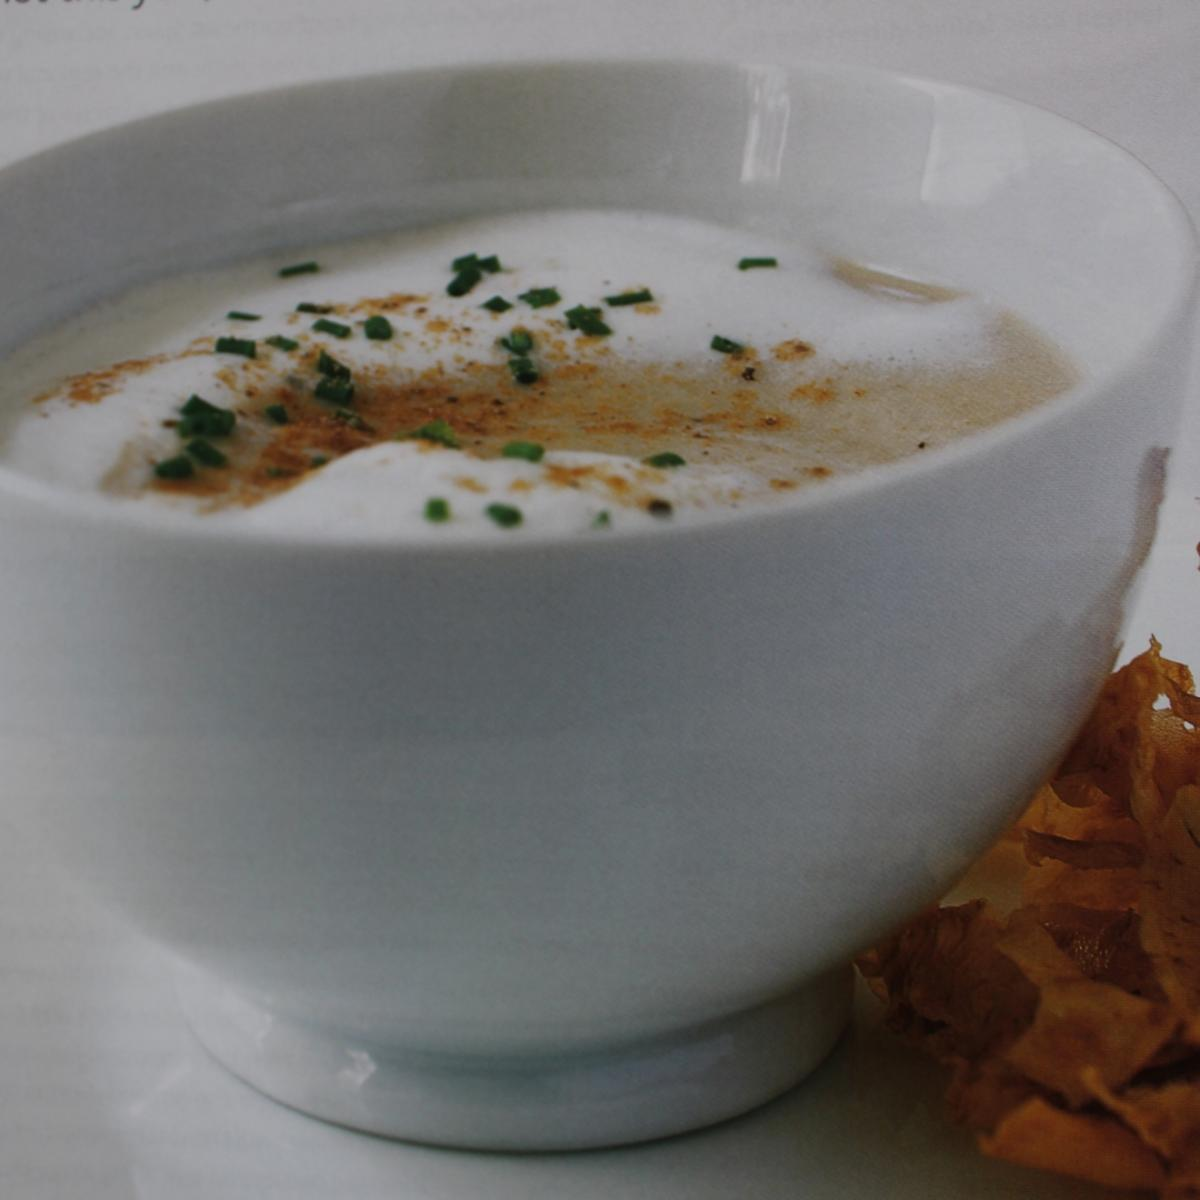 A picture of Delia's Celeriac and Chestnut Soup with Celeriac Crisps recipe